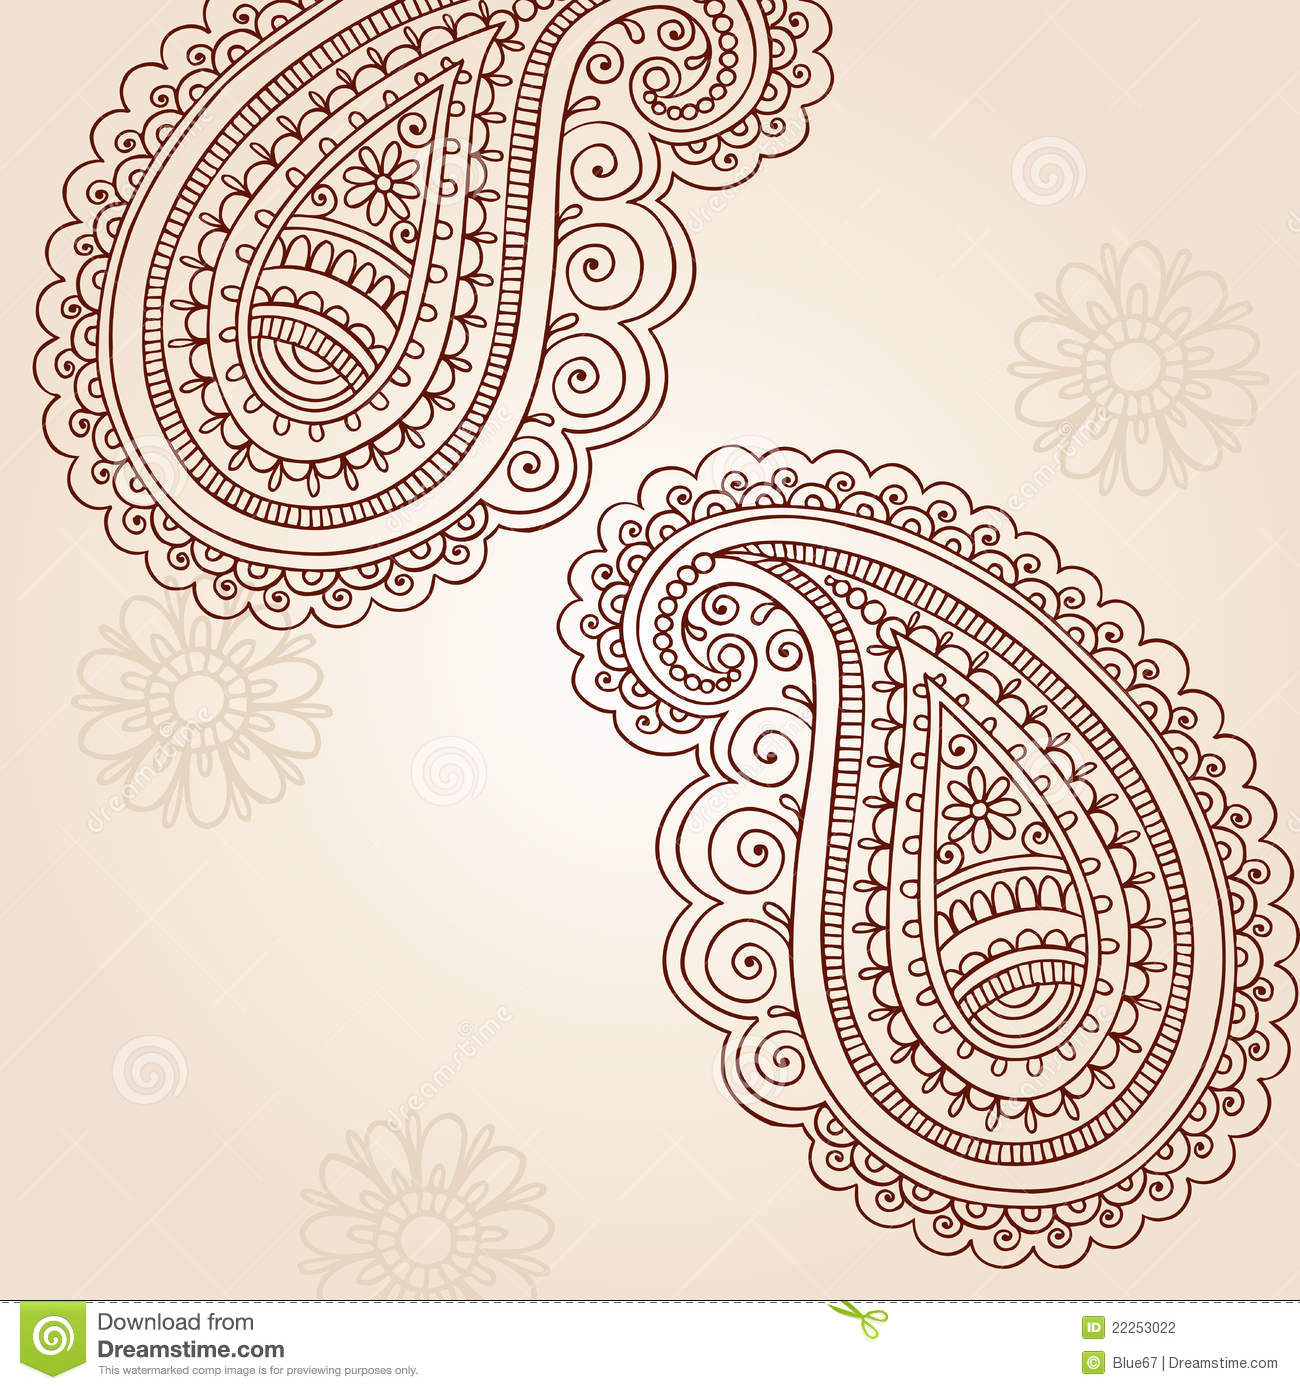 Henna Mehndi Paisley Doodle Vector Design Elements Stock Vector